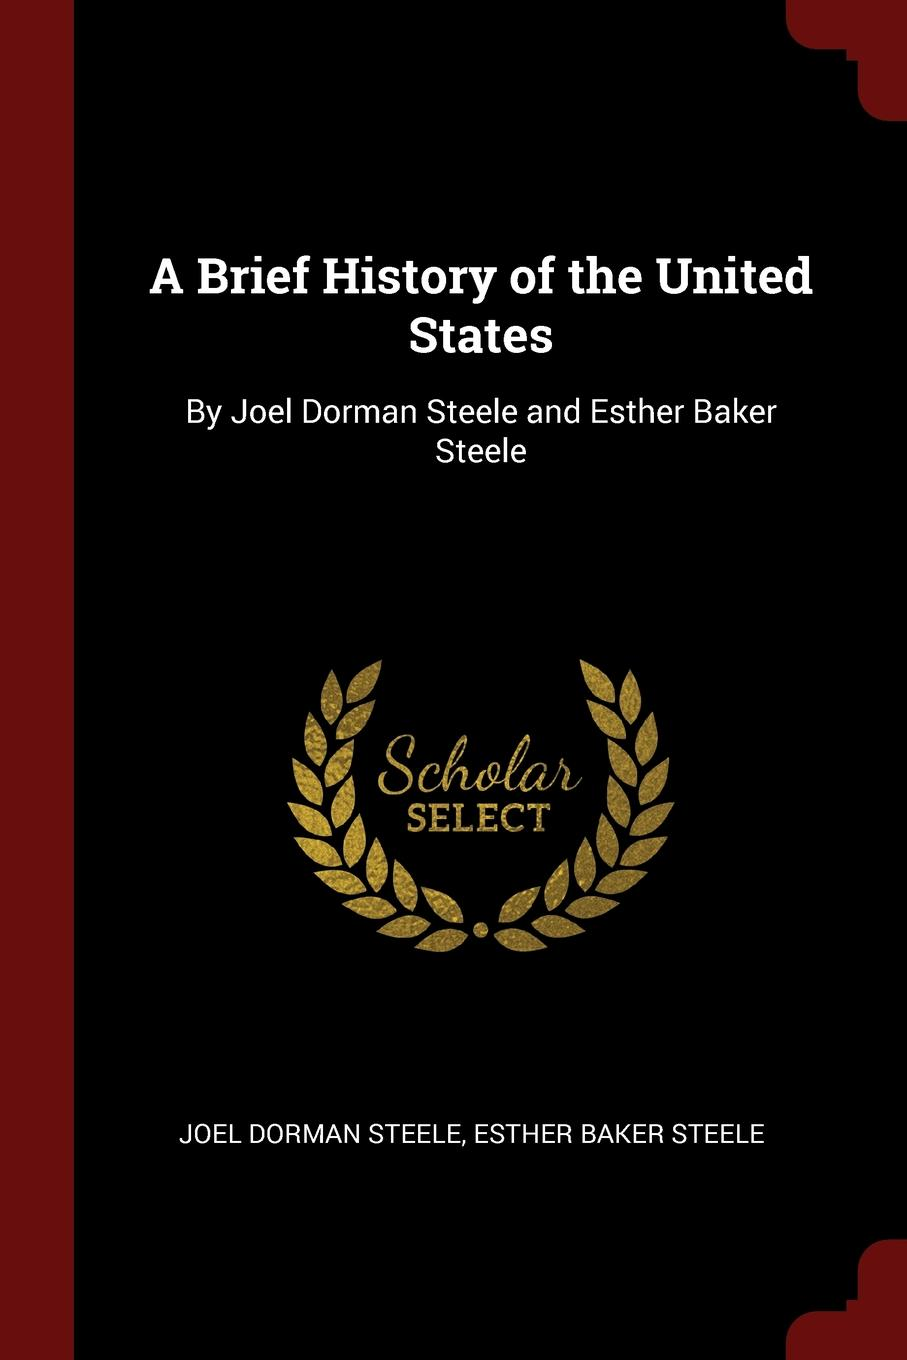 Joel Dorman Steele, Esther Baker Steele A Brief History of the United States. By Joel Dorman Steele and Esther Baker Steele